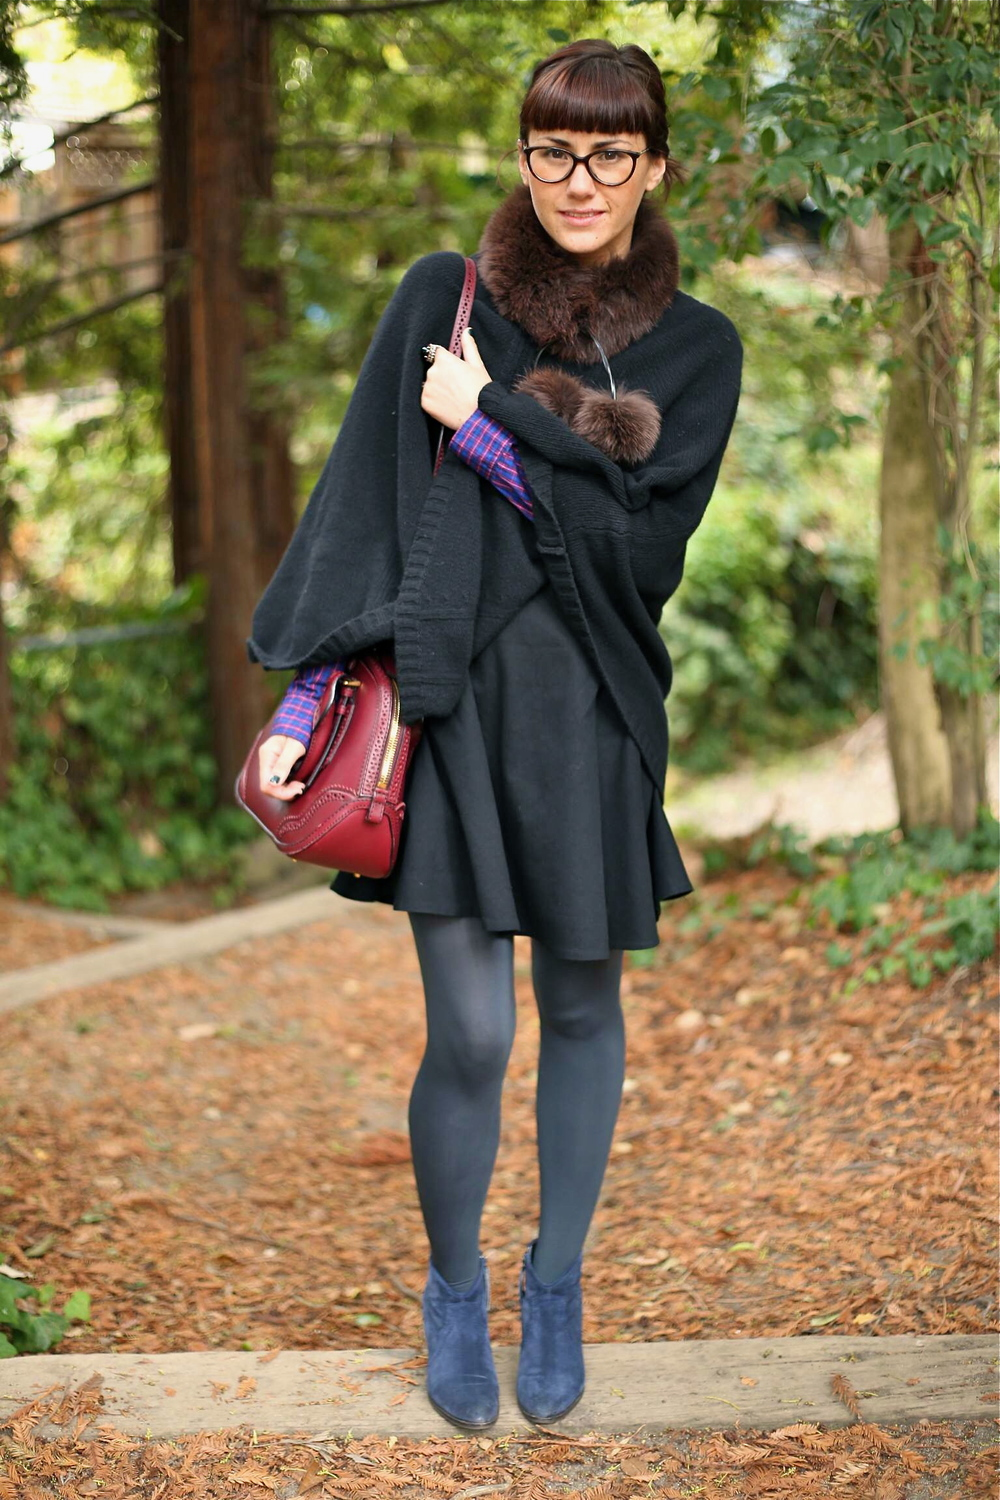 Poncho: Jigsaw London; Check Blouse: Gap; Dress: Joie, via Marshalls; Boots: Jigsaw London; Bag: Burberry; Furry Collar: Vintage, via estate sale